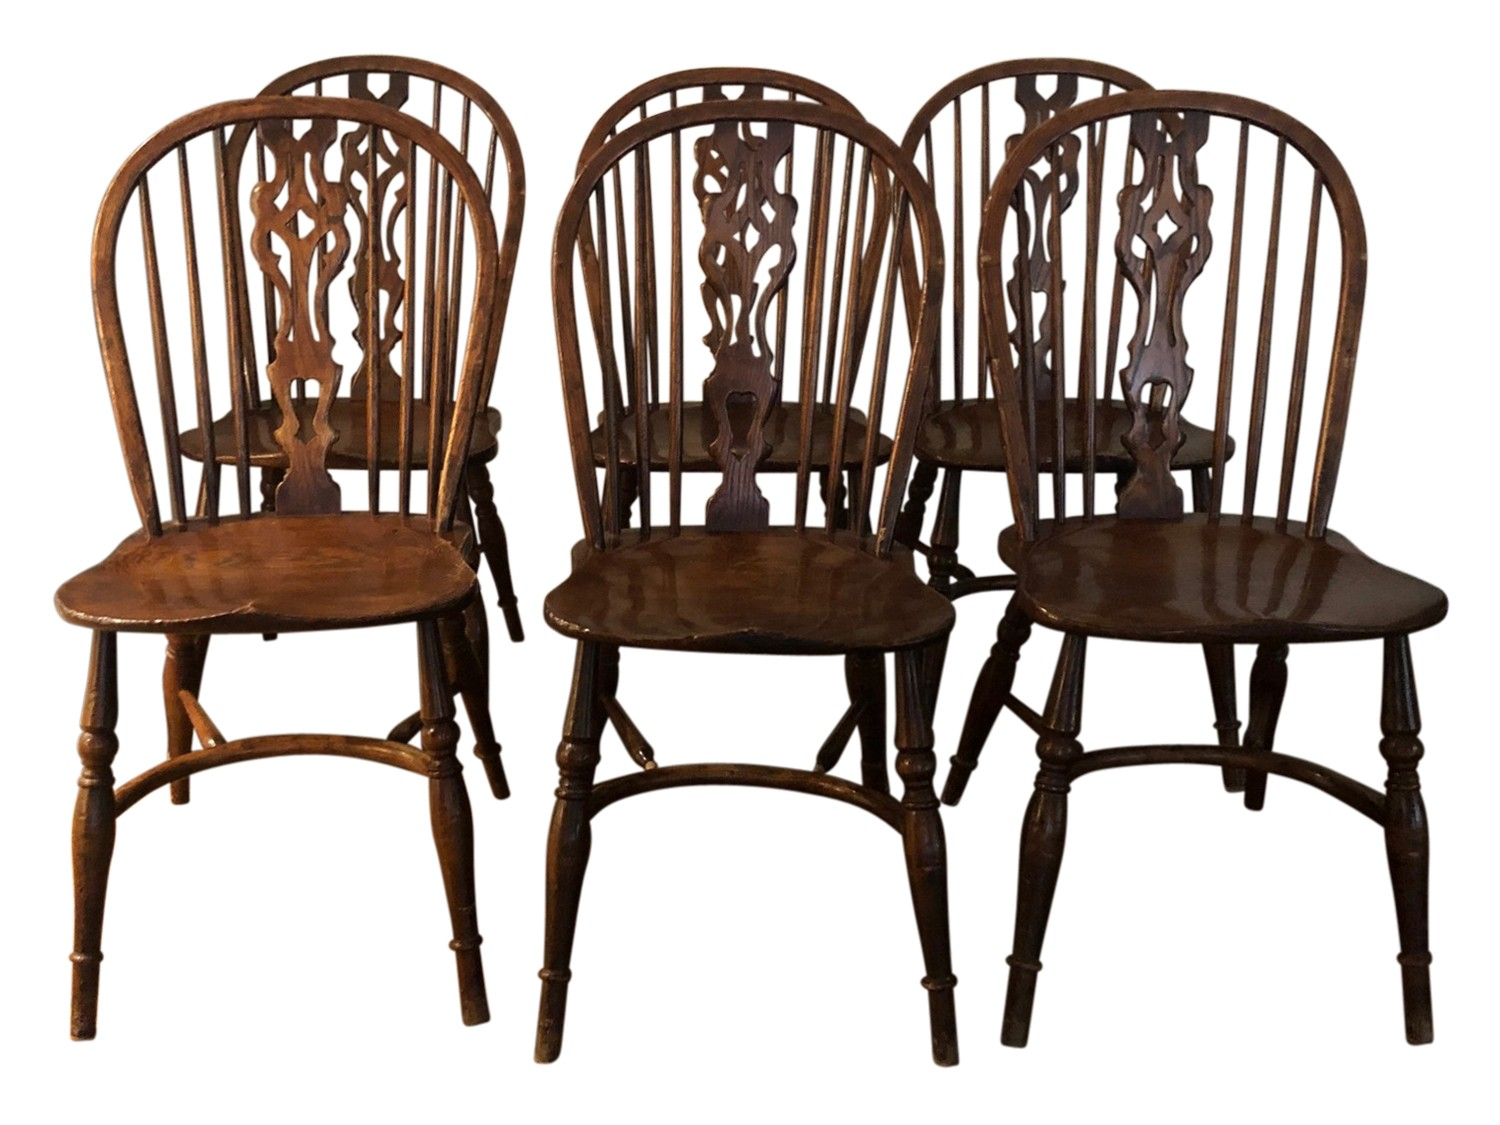 Dining Chair Set Of 6 English Wheelback Windsor Dining Chairs Set Of 6